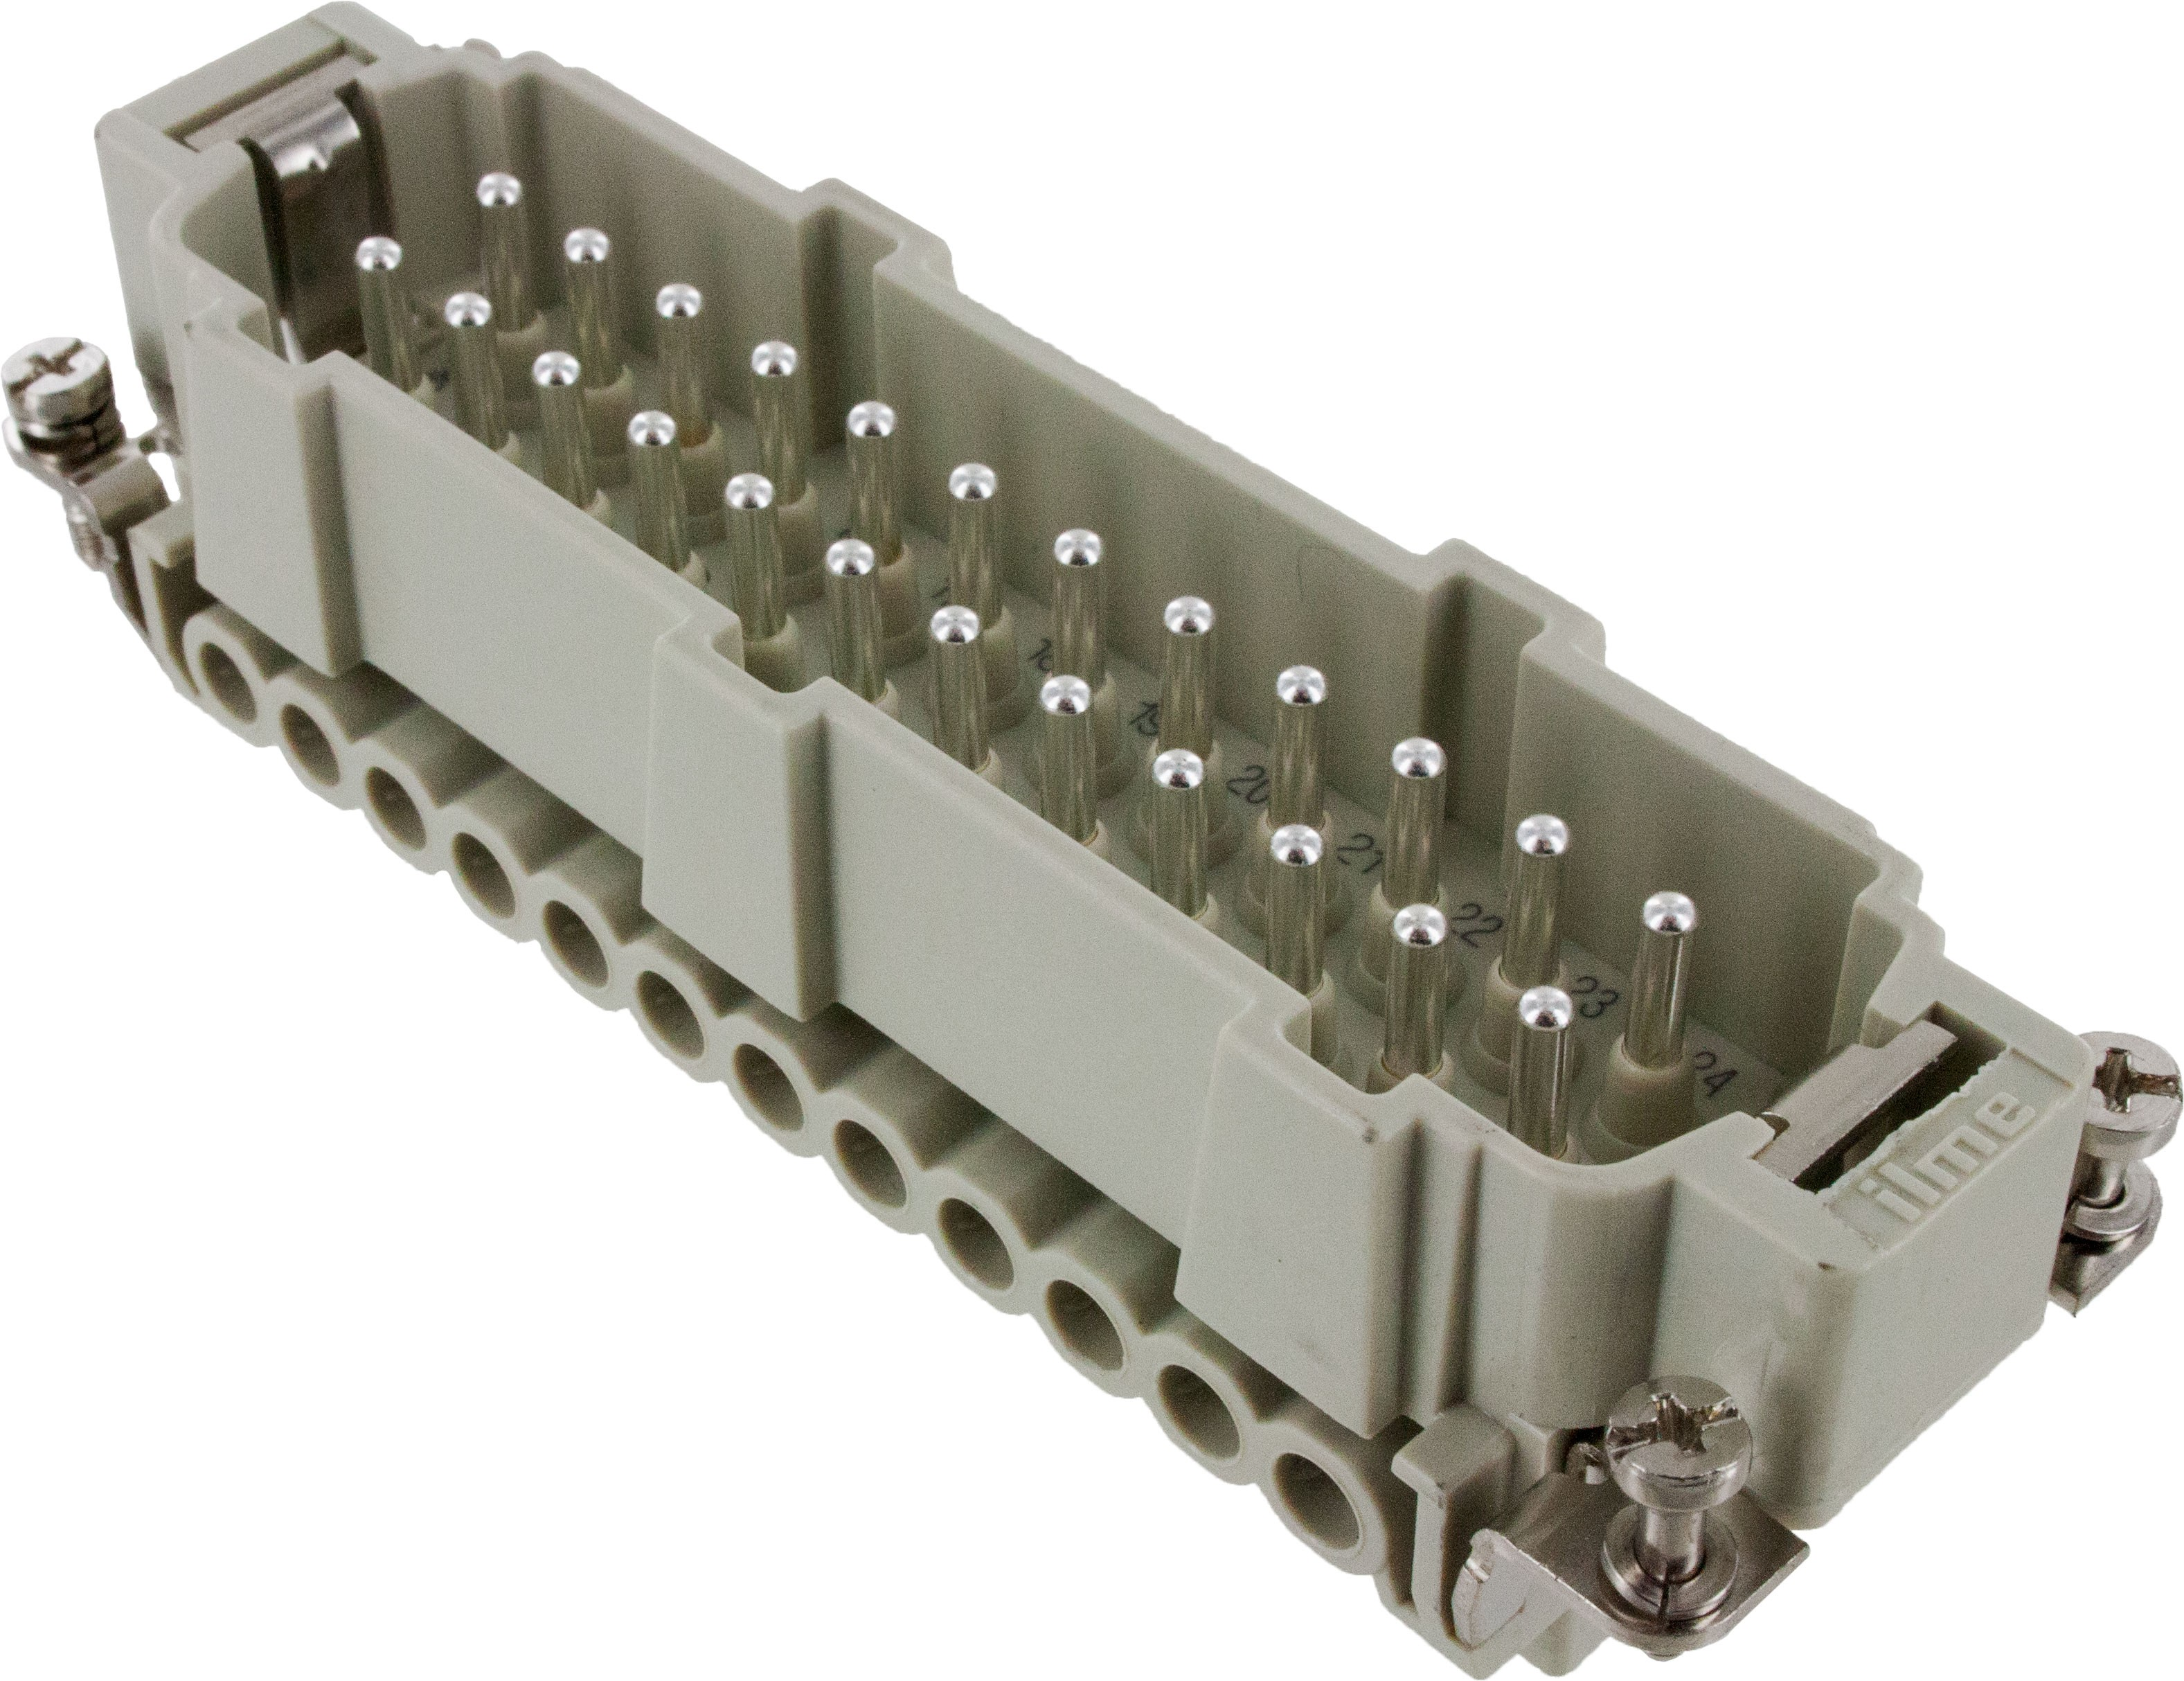 24 Pole Rectangular Connector Male Insert 16 Amp CNEF24T Angle